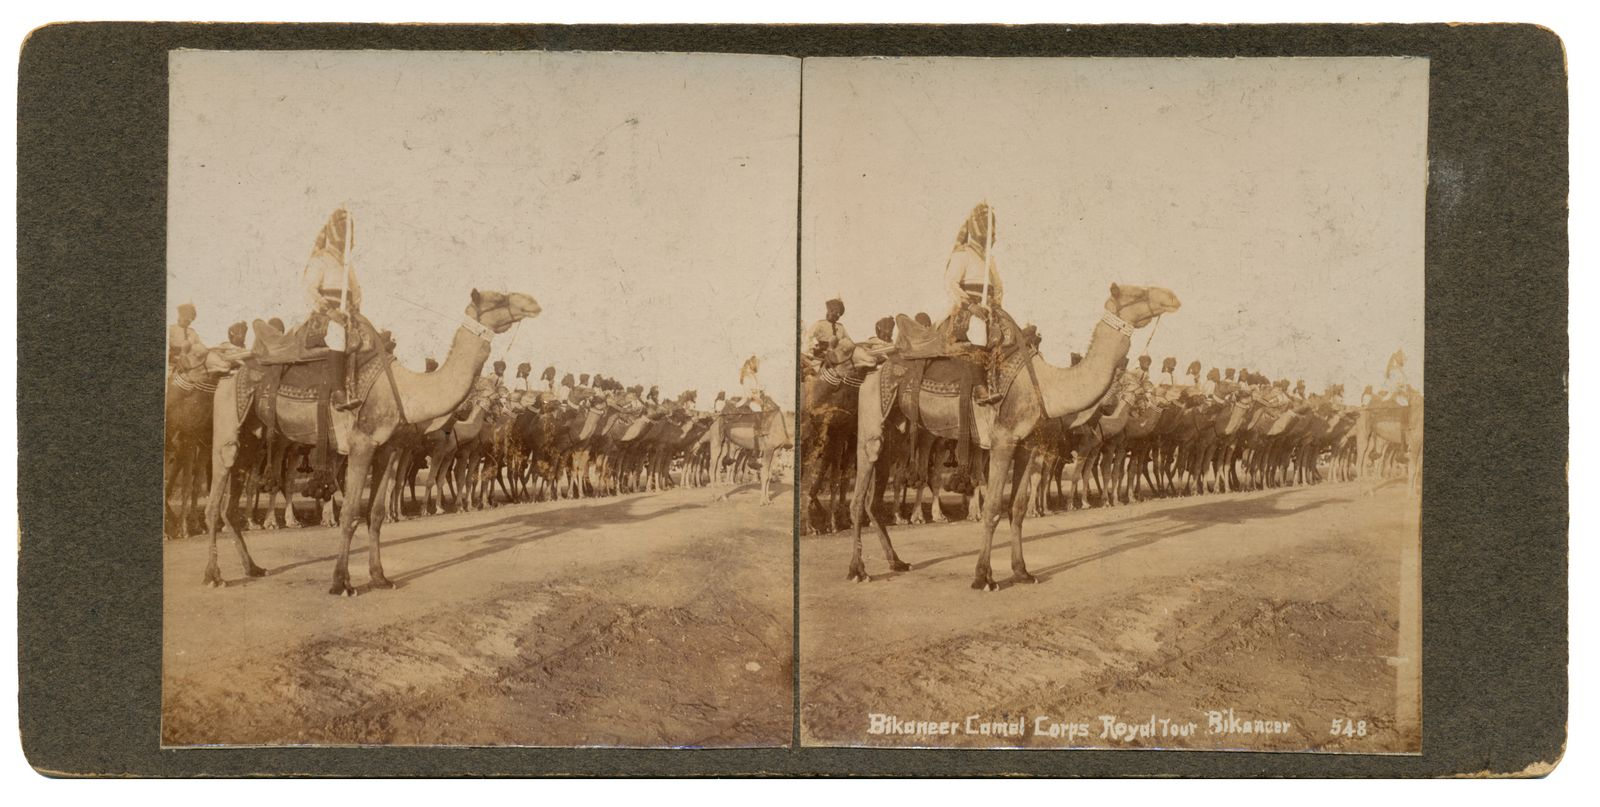 Bikaneer Camel Corps Royal Tour